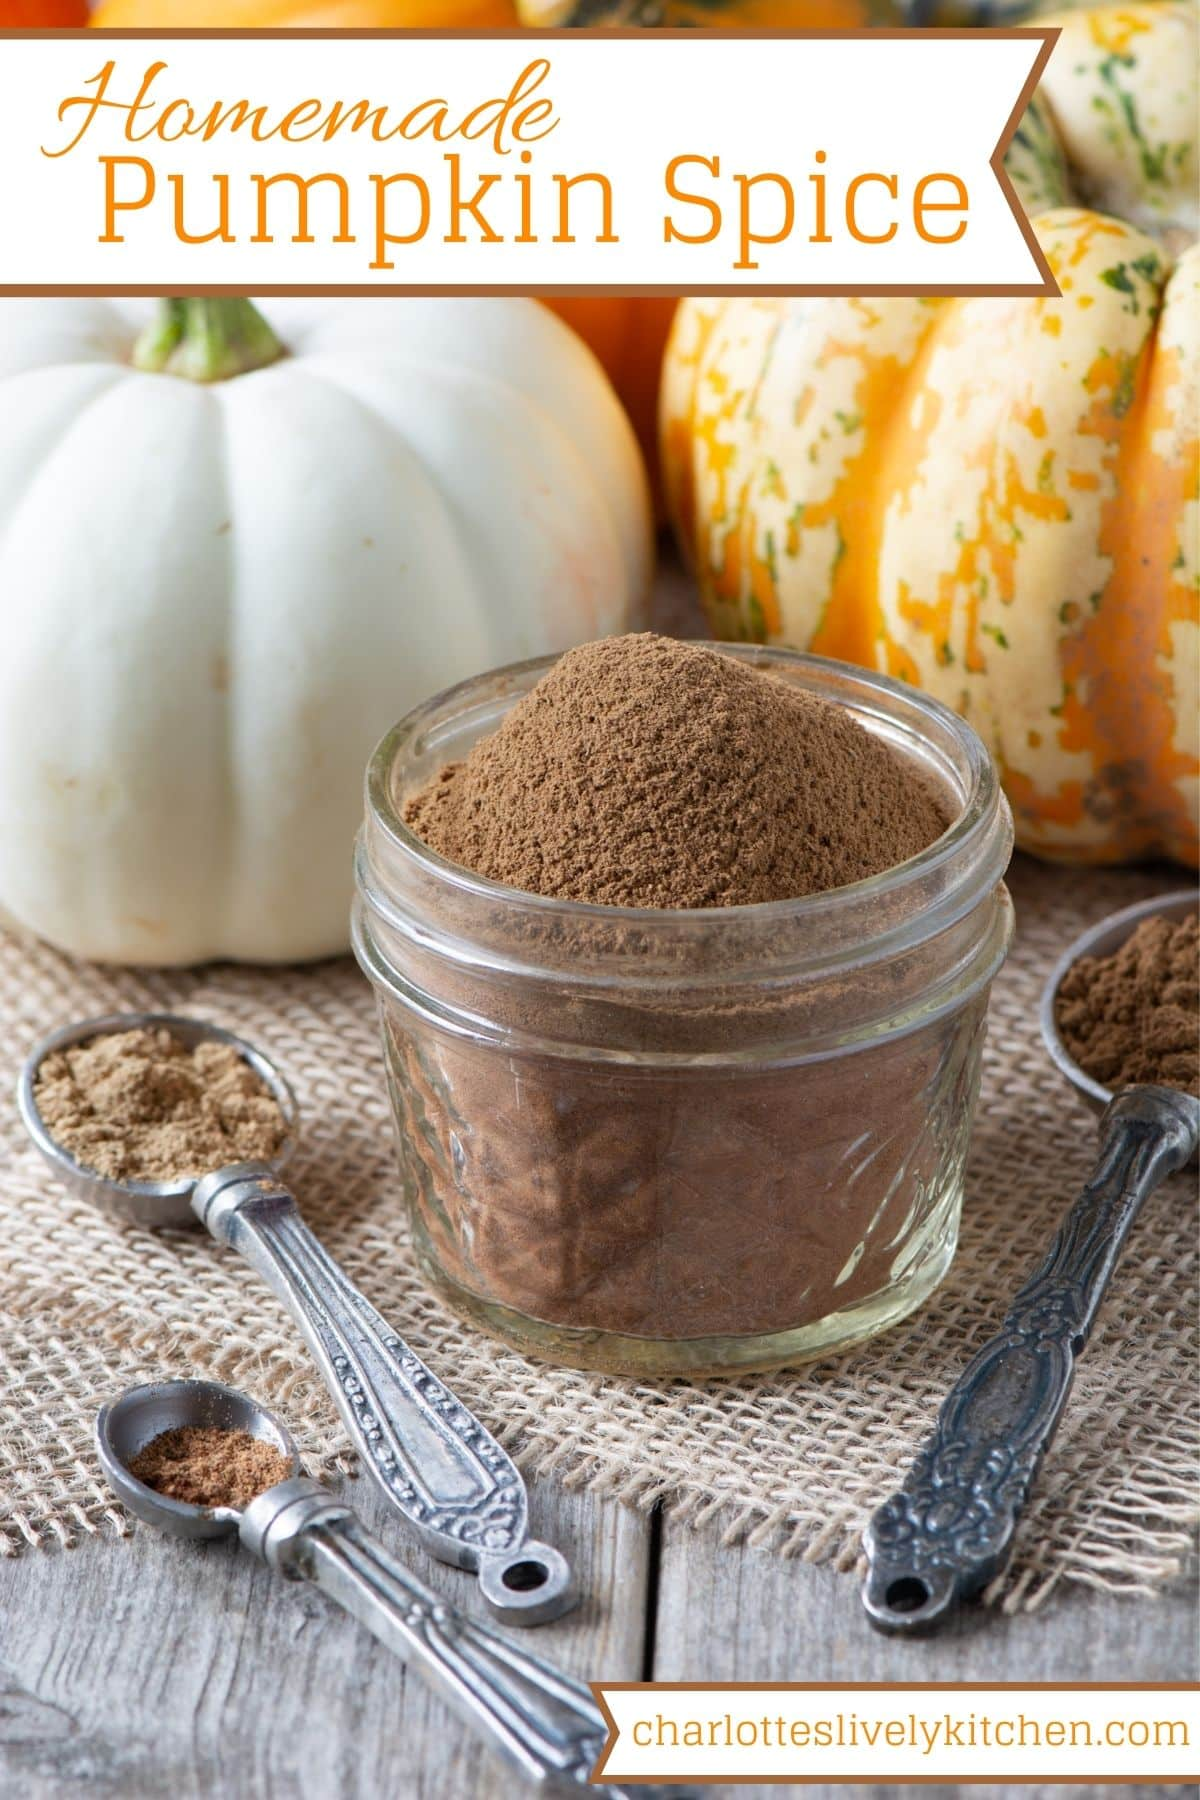 Pin graphics showing the pumpkin spice mix in a small jar with pumpkins behind and the various spices in spoons to the front. The website name and recipe title are included as text overlays.